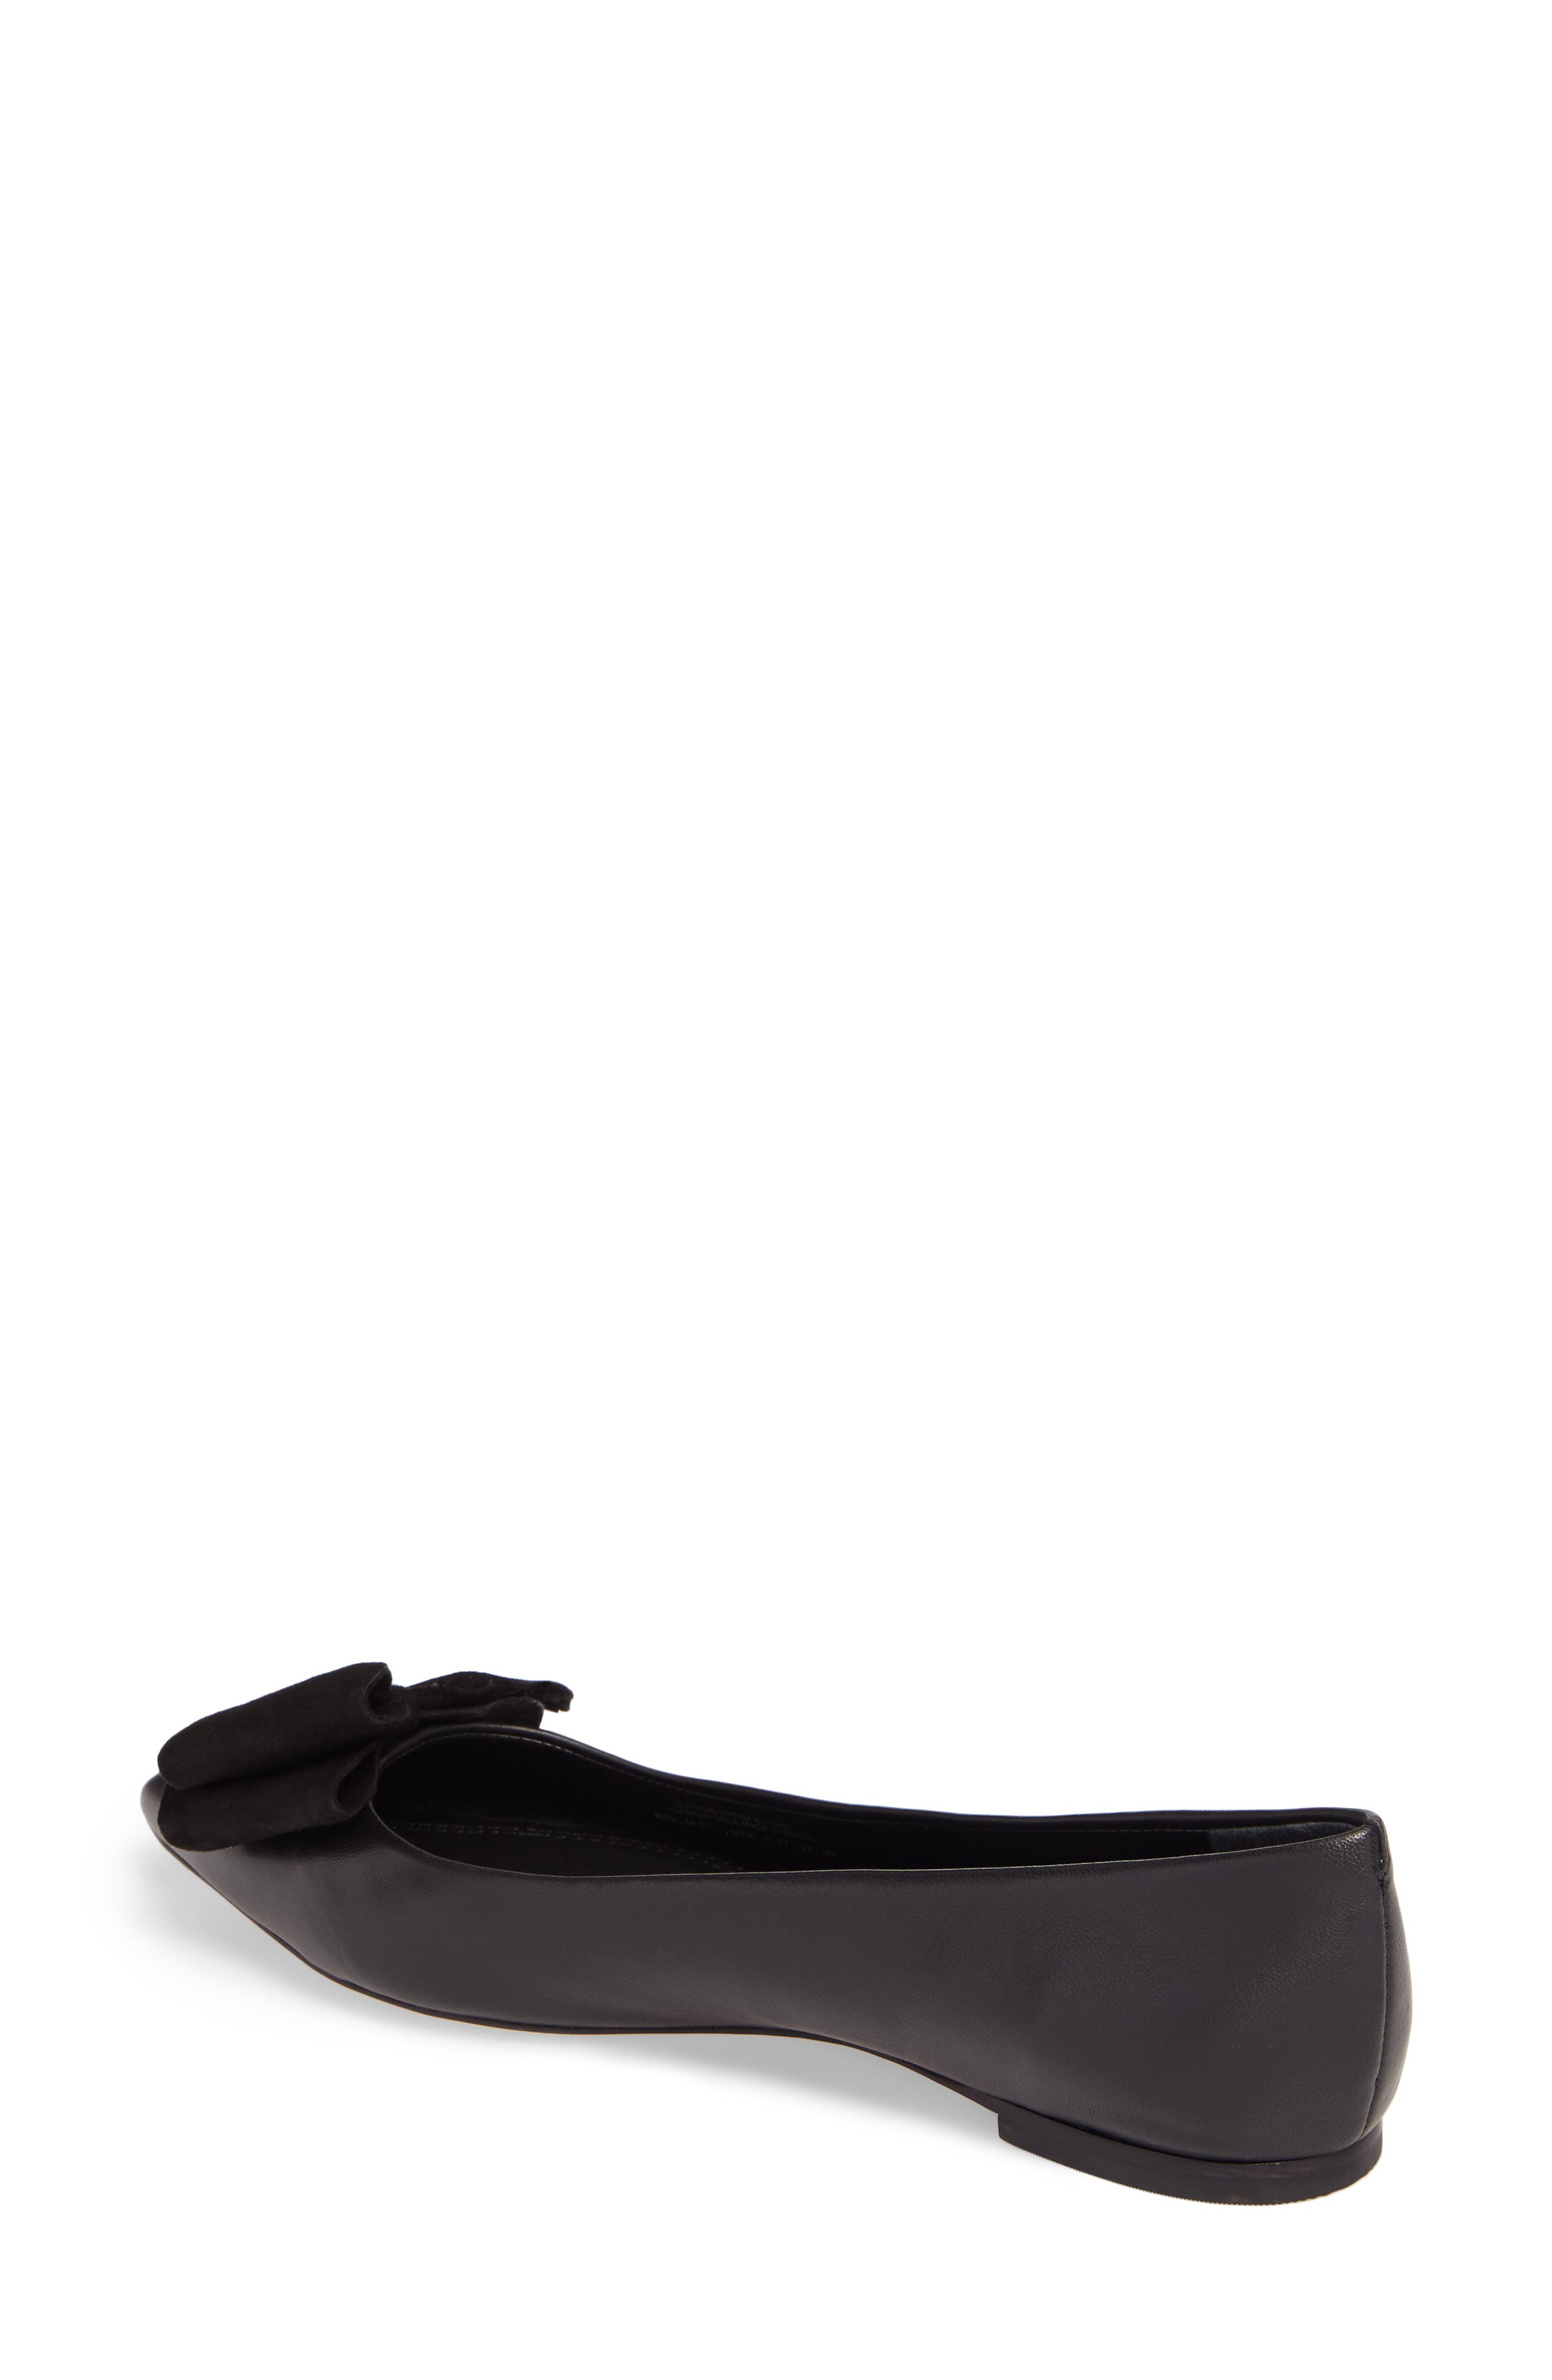 Rosalind Bow Pointy Toe Flat,                             Alternate thumbnail 2, color,                             BLACK LEATHER